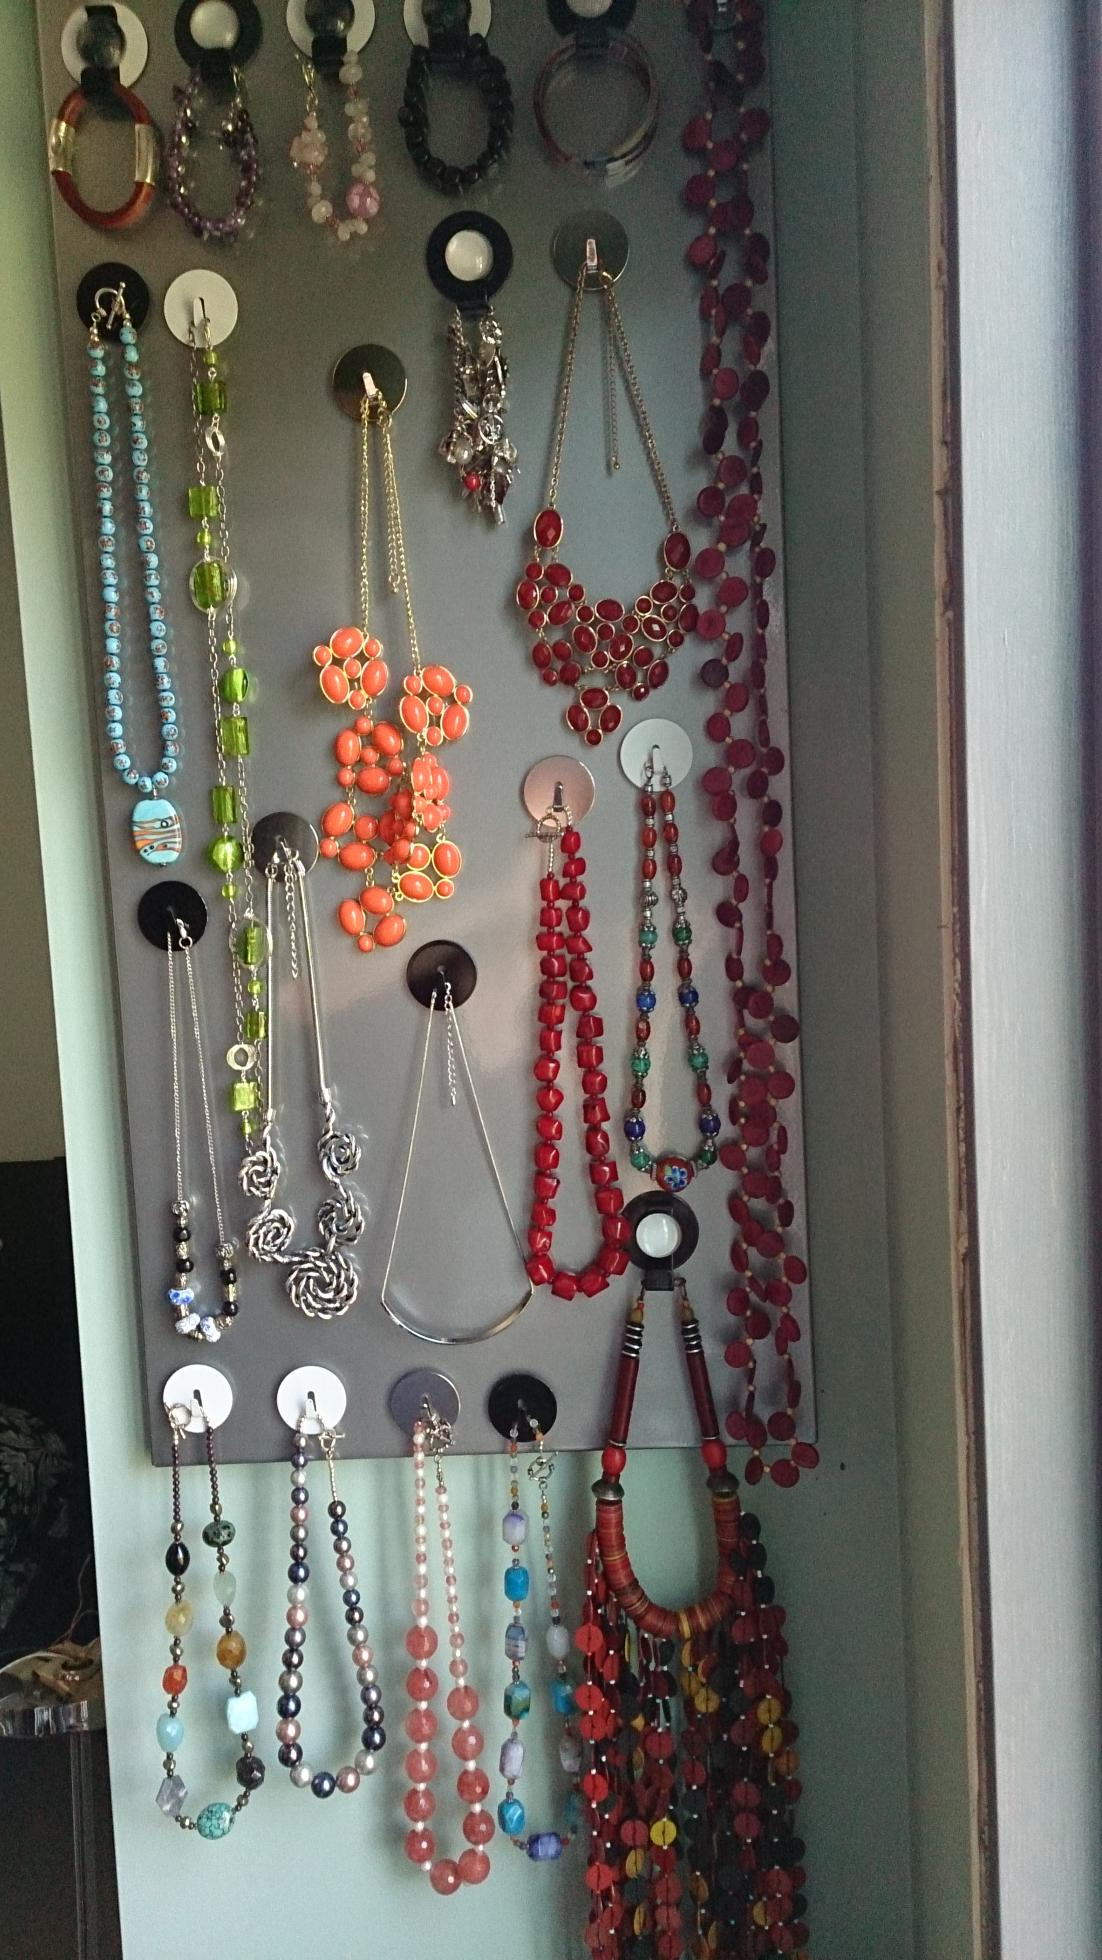 2015-08-11 Necklaces and Bracelets